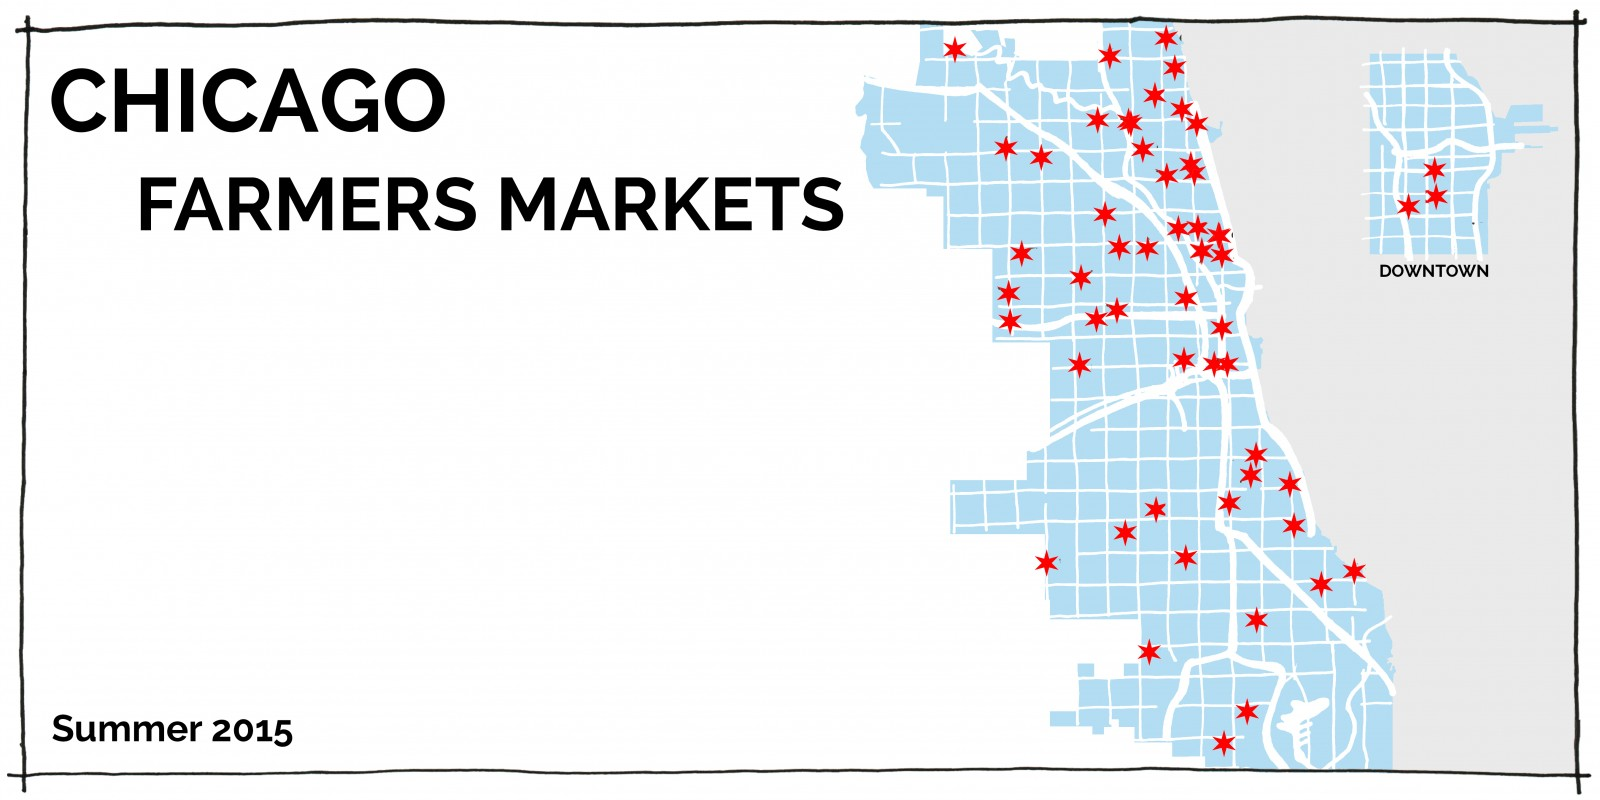 Chicago Farmers Market Map 2015